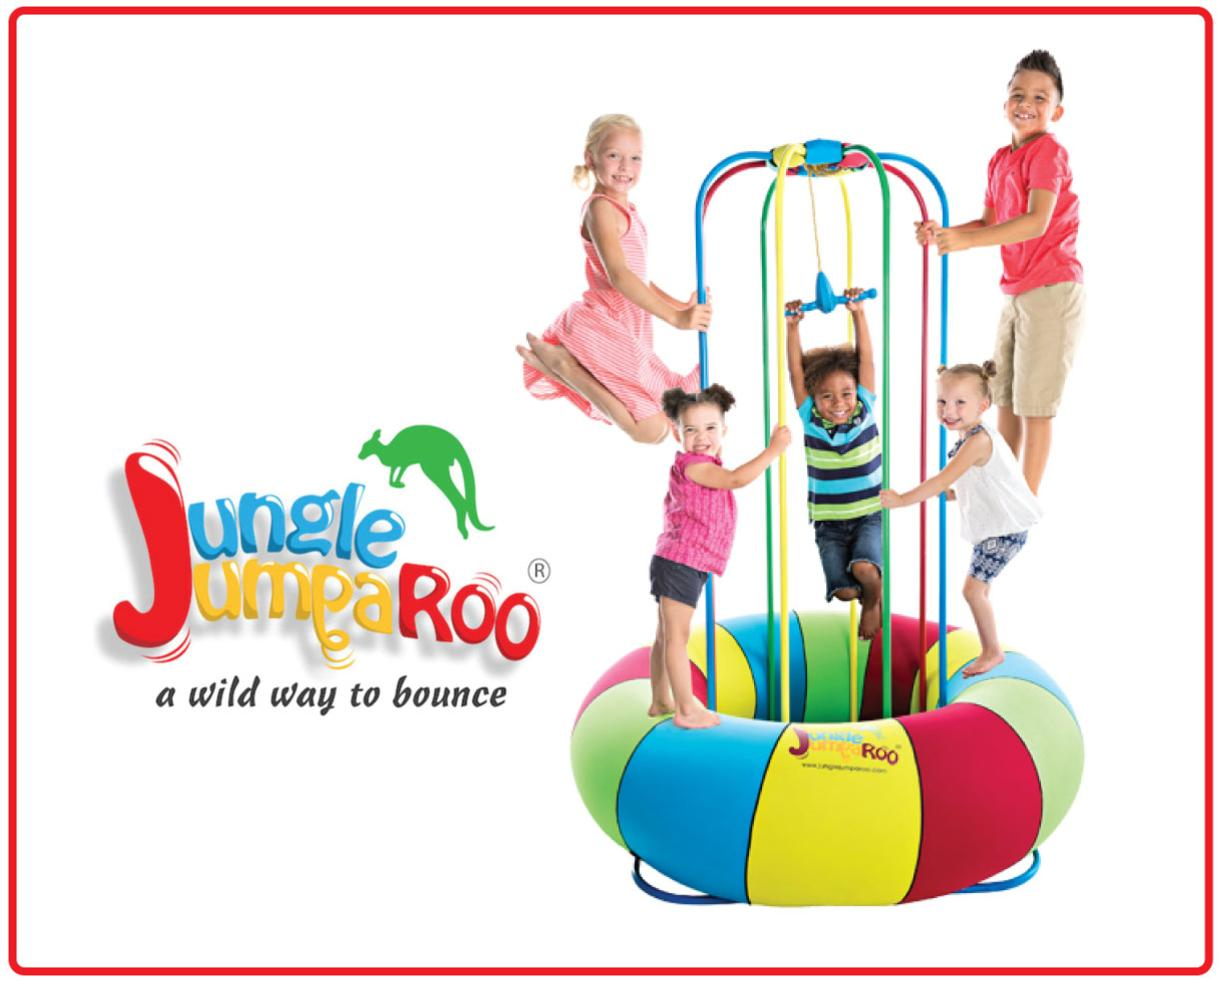 $299 for Jungle Jumparoo + Attachable Sprinkler - The Must Have Playground as Seen on Shark Tank! Includes Discounted Shipping! ($150 Off)